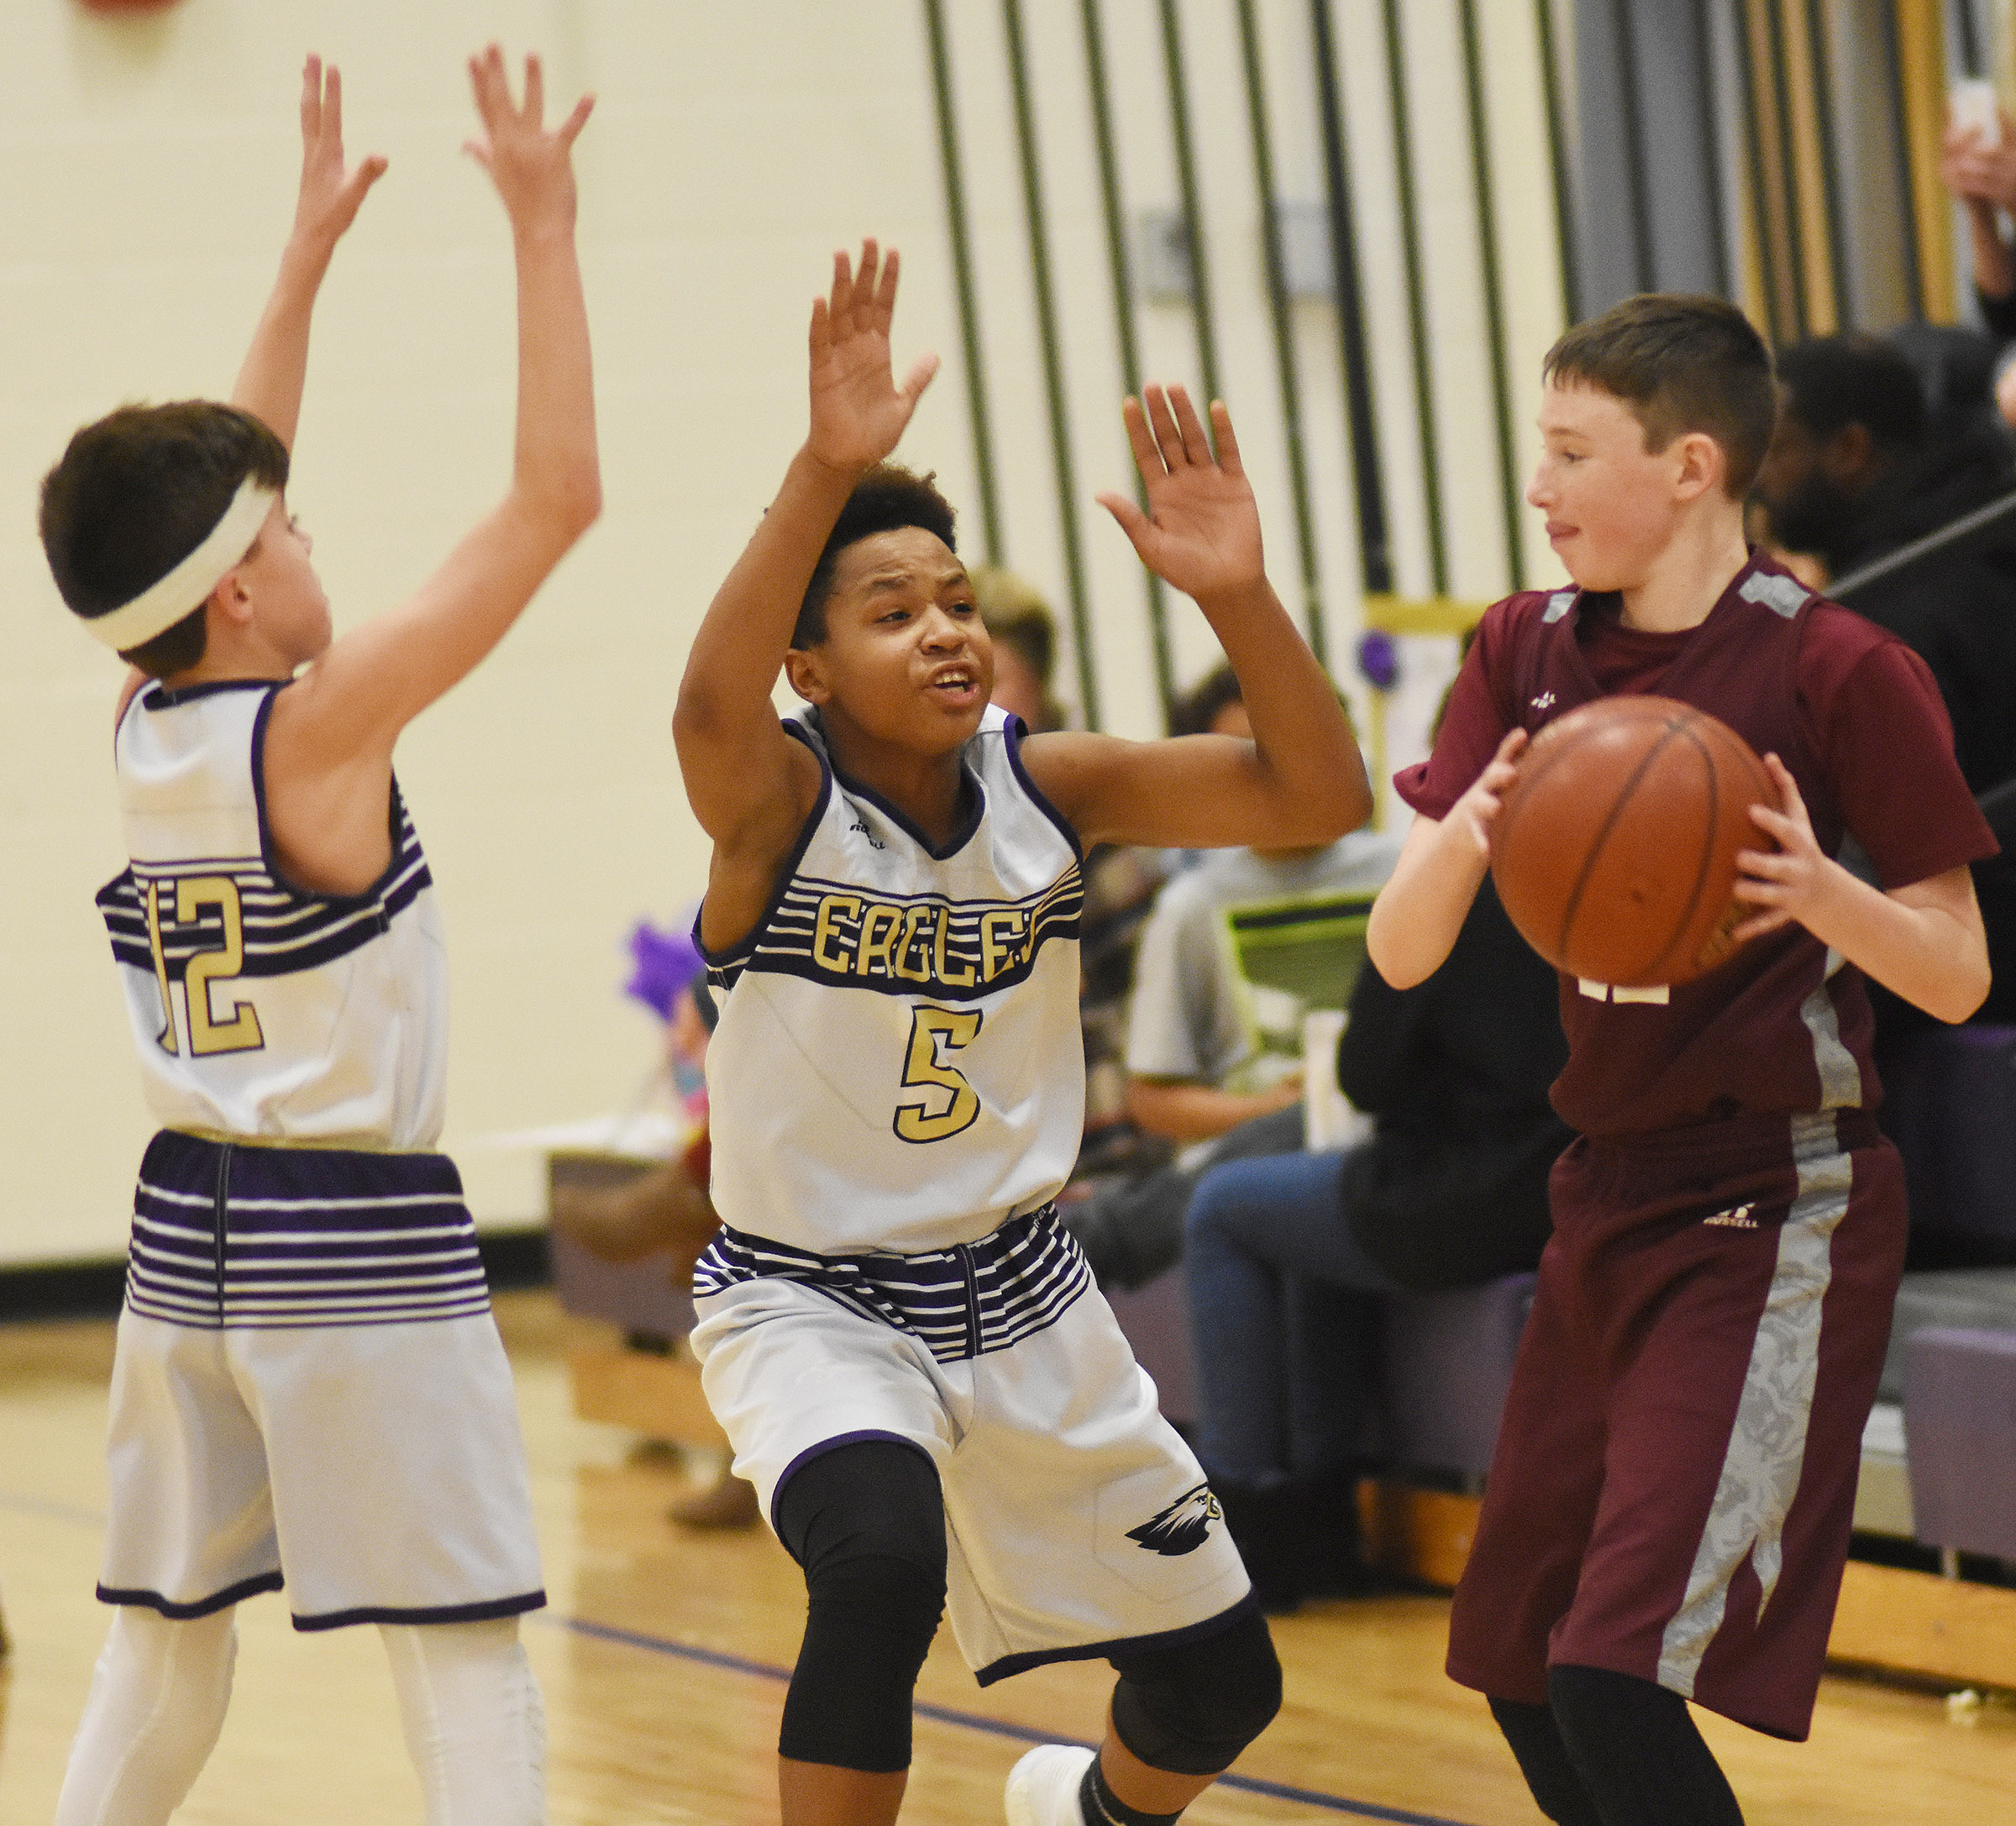 CMS seventh-graders Chase Hord, at left, and Deondre Weathers play defense.